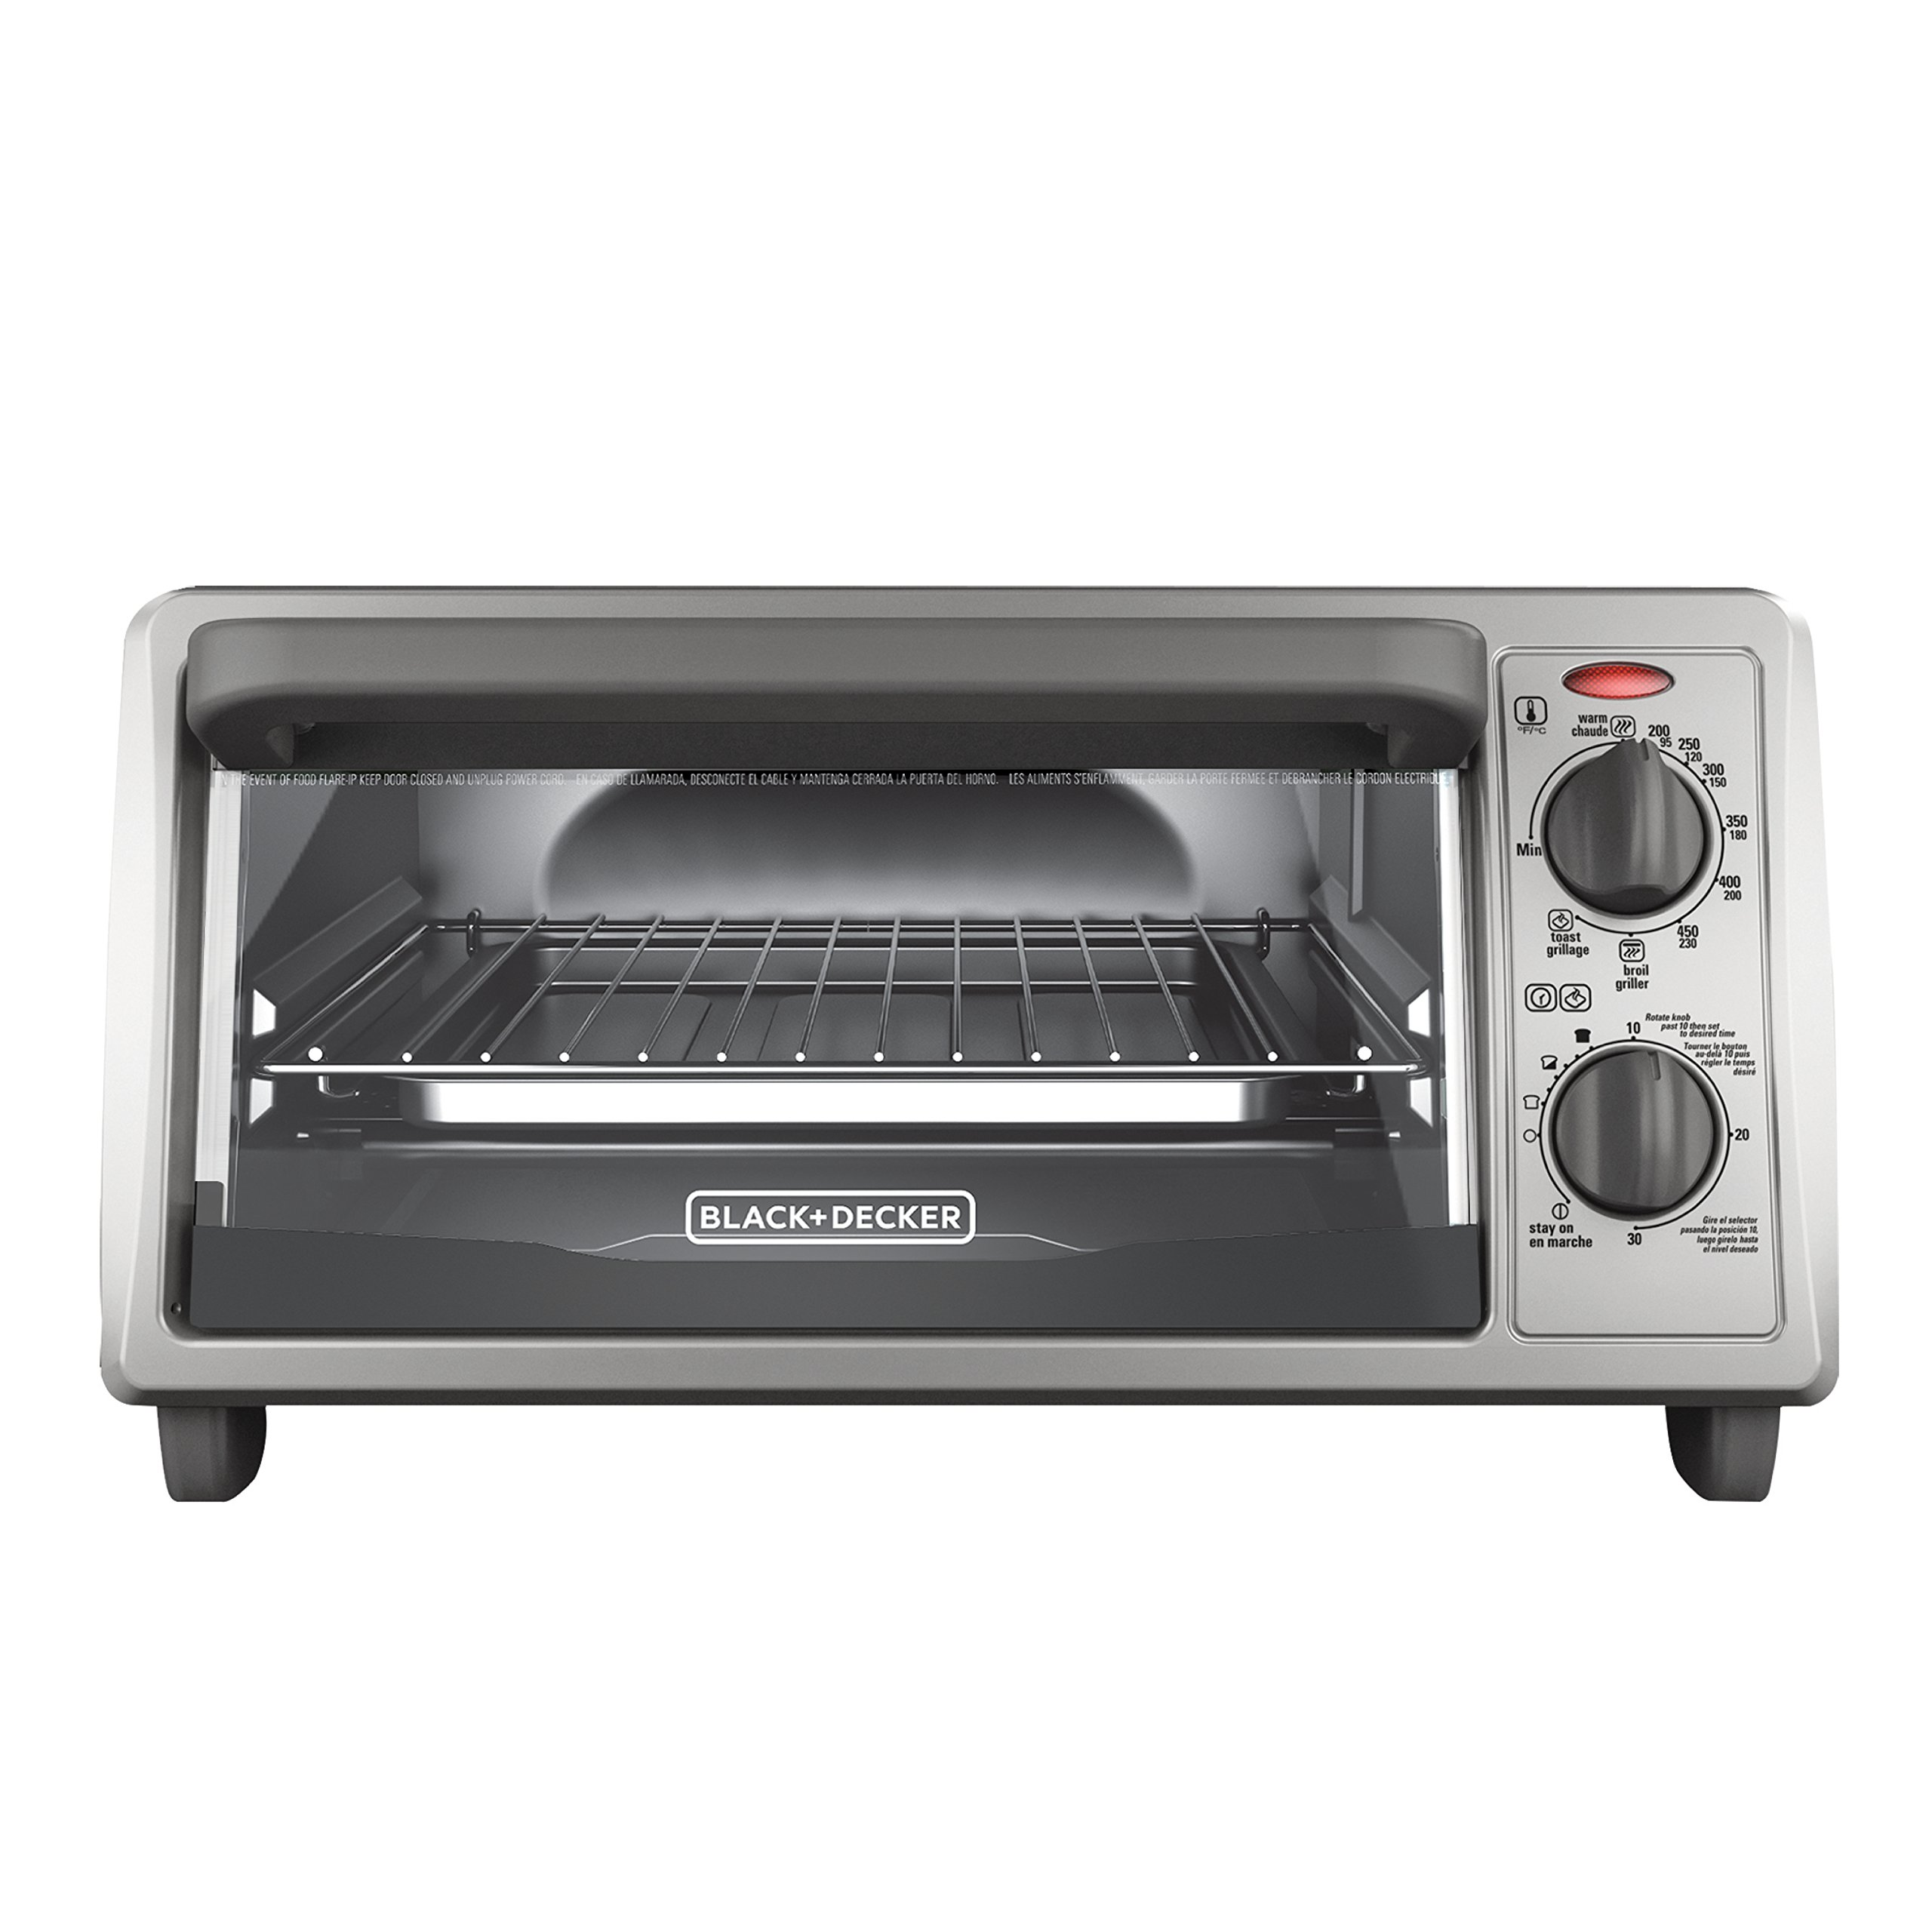 BLACK+DECKER 4-Slice Countertop Toaster Oven, Stainless steel Silver TO1322SBD by BLACK+DECKER